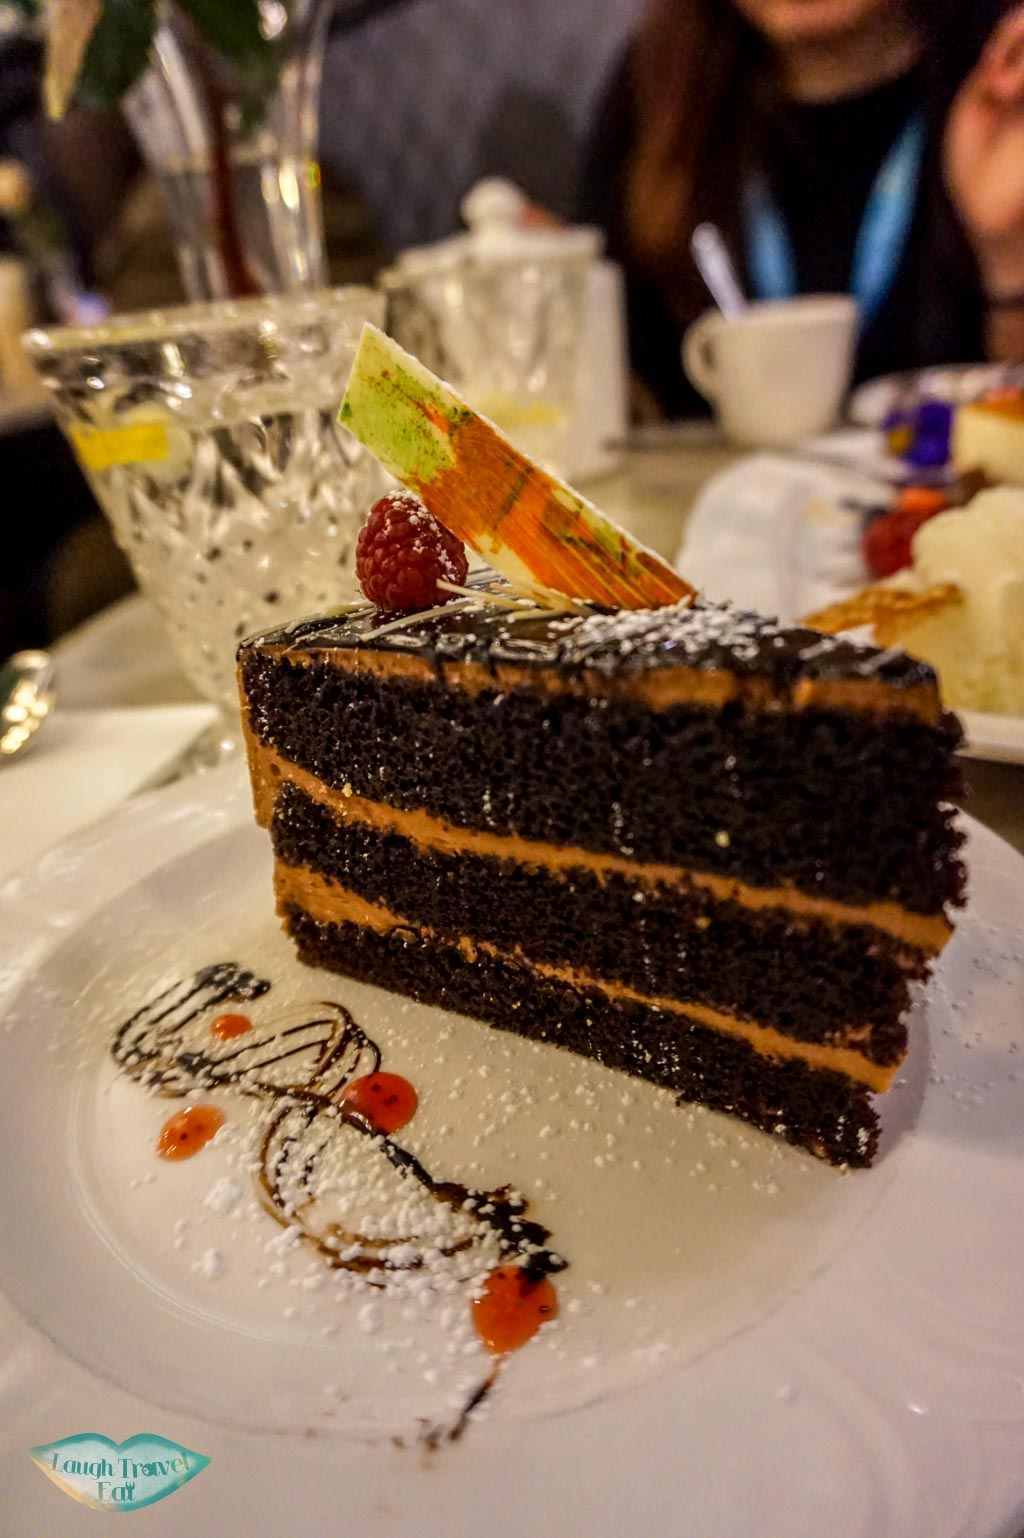 Chocolate cake,Hopetoun Tea Rooms, Royal Arcade, Melbourne, Australia